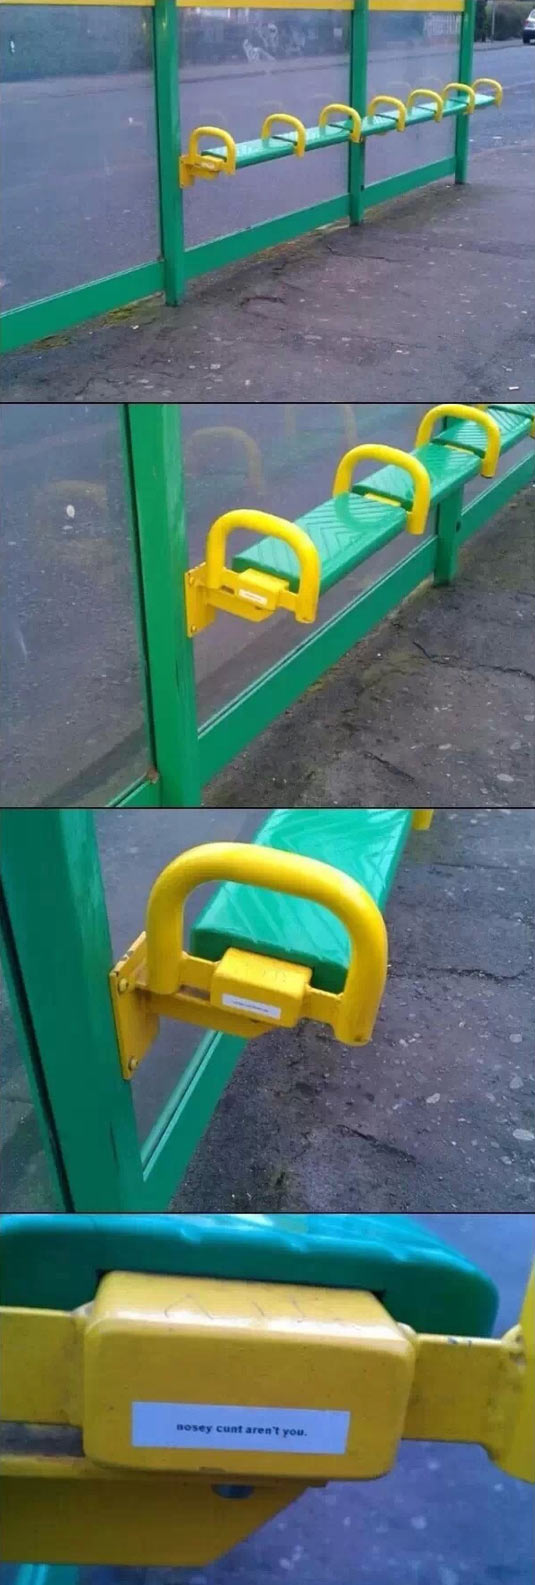 funny-bench-bus-stop-curious